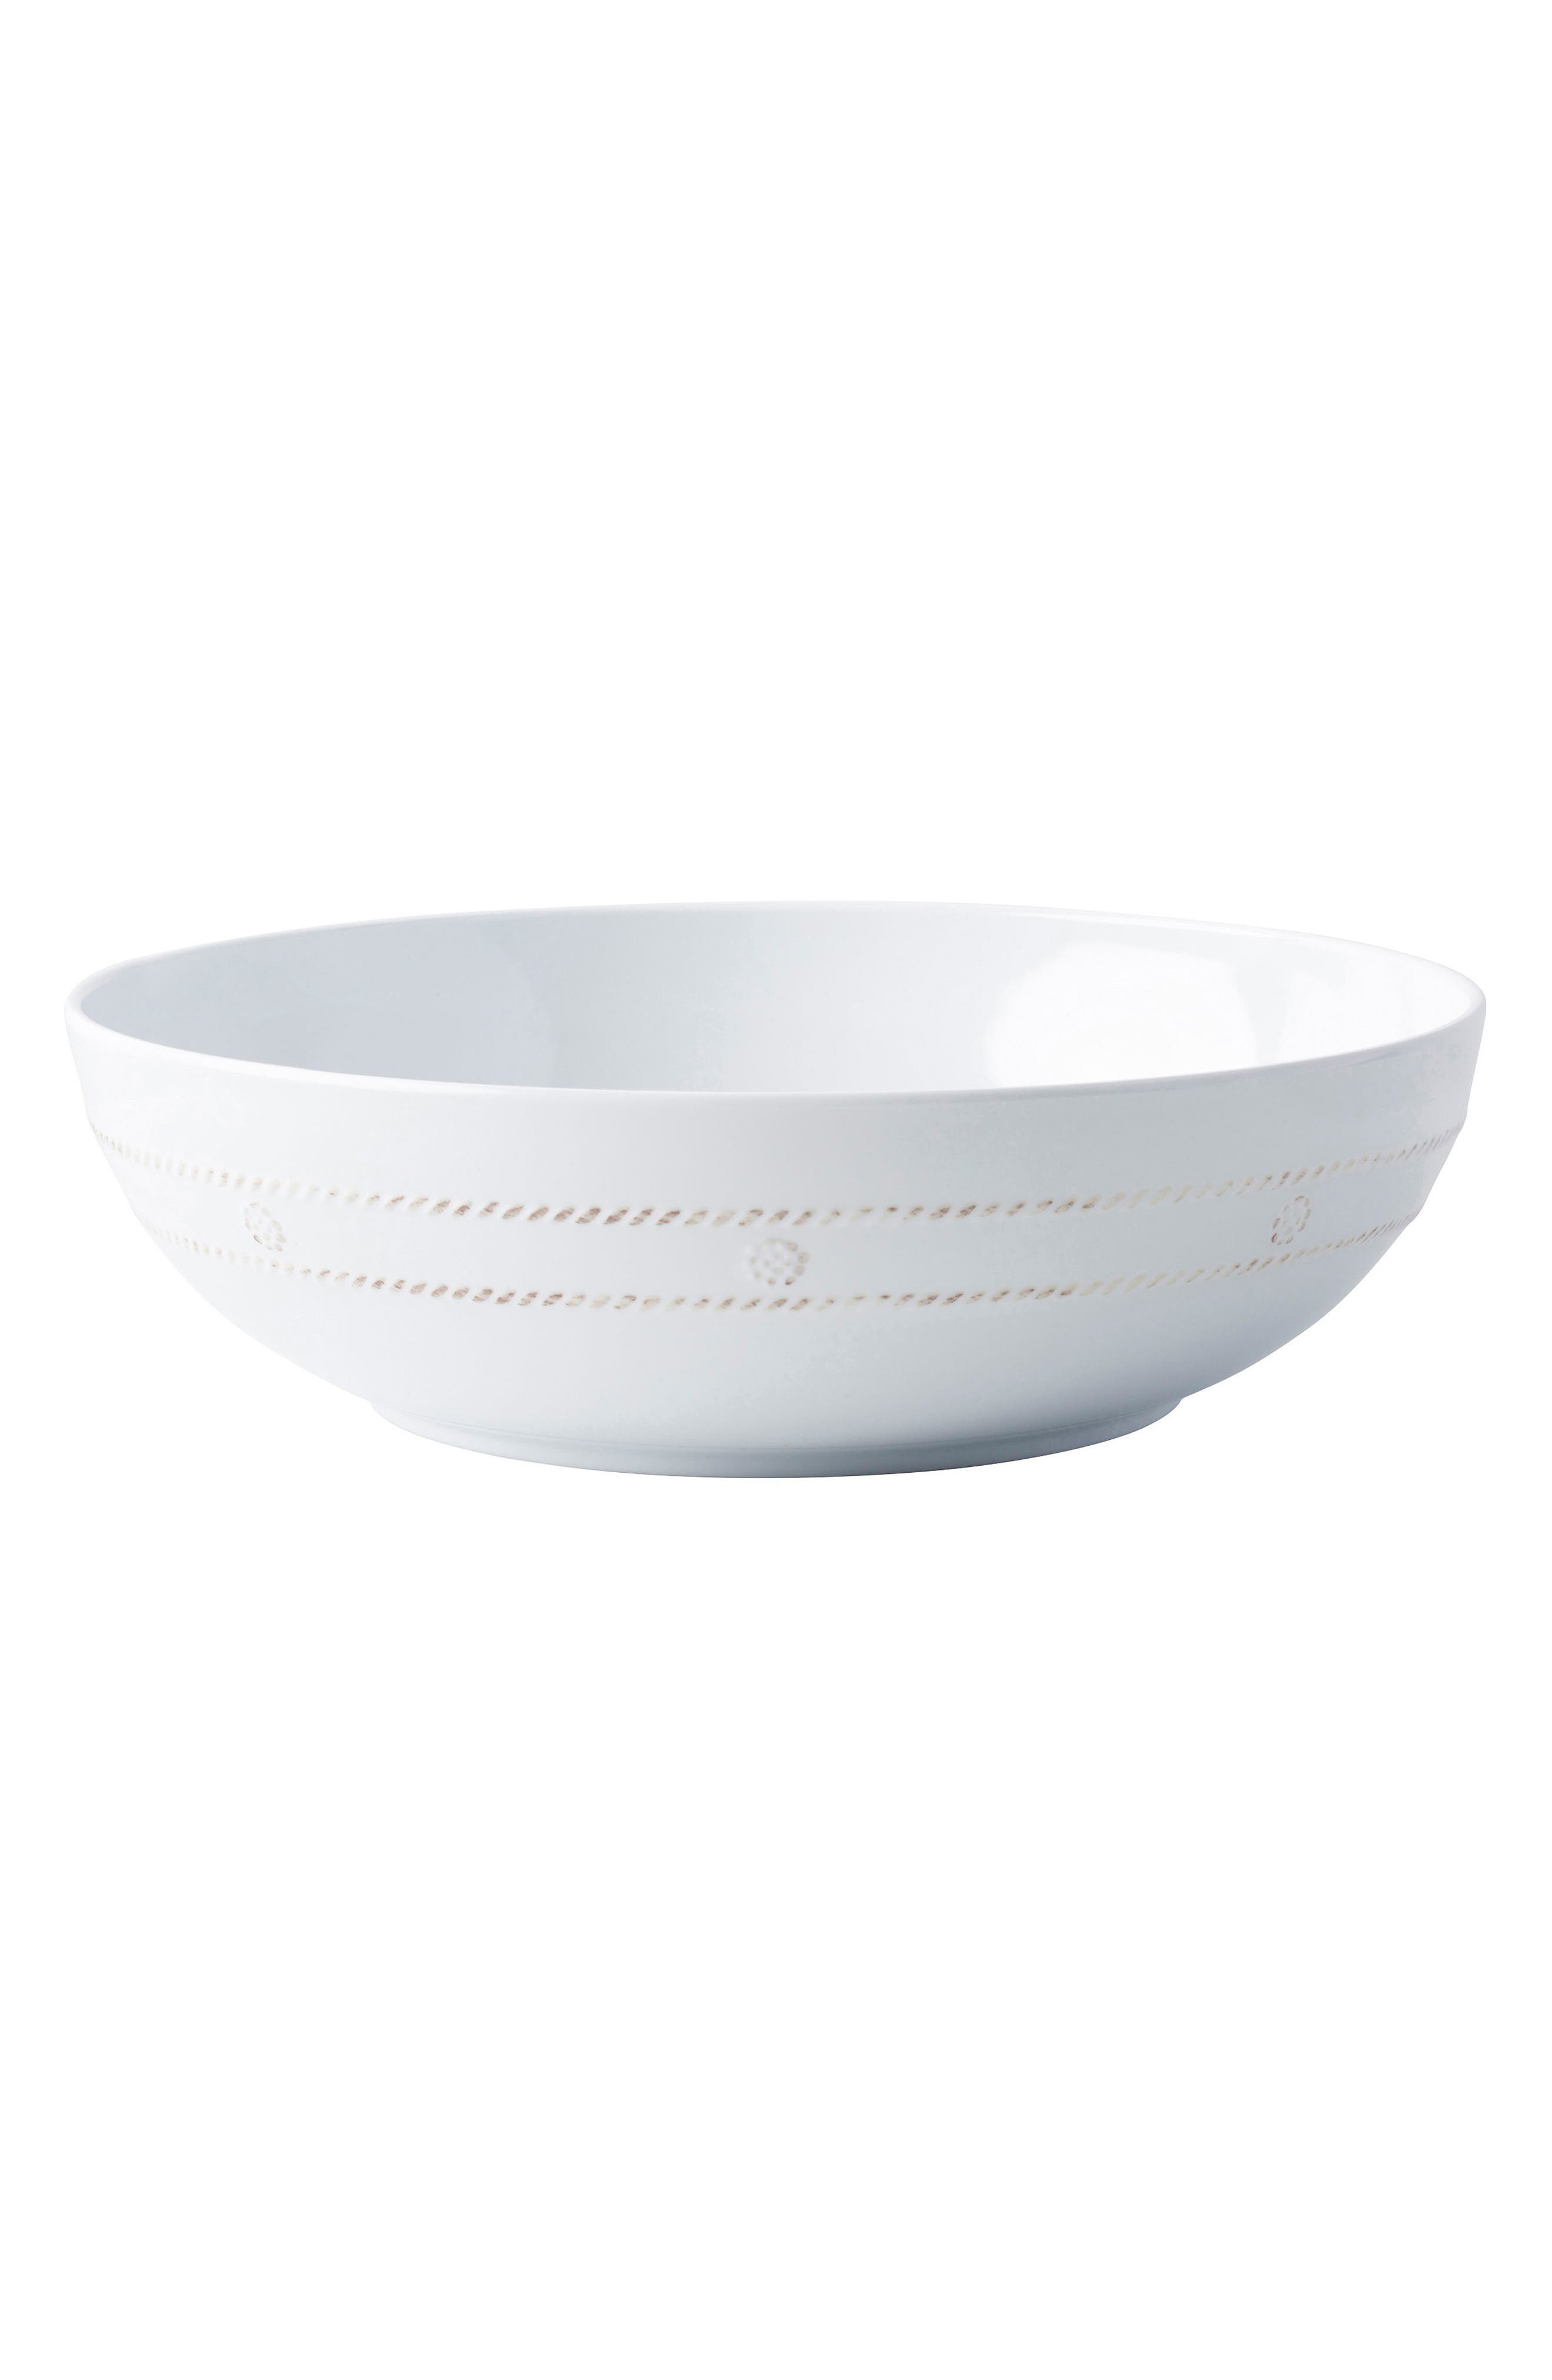 Berry & Thread Melamine Whitewash Bowl,                             Main thumbnail 1, color,                             100